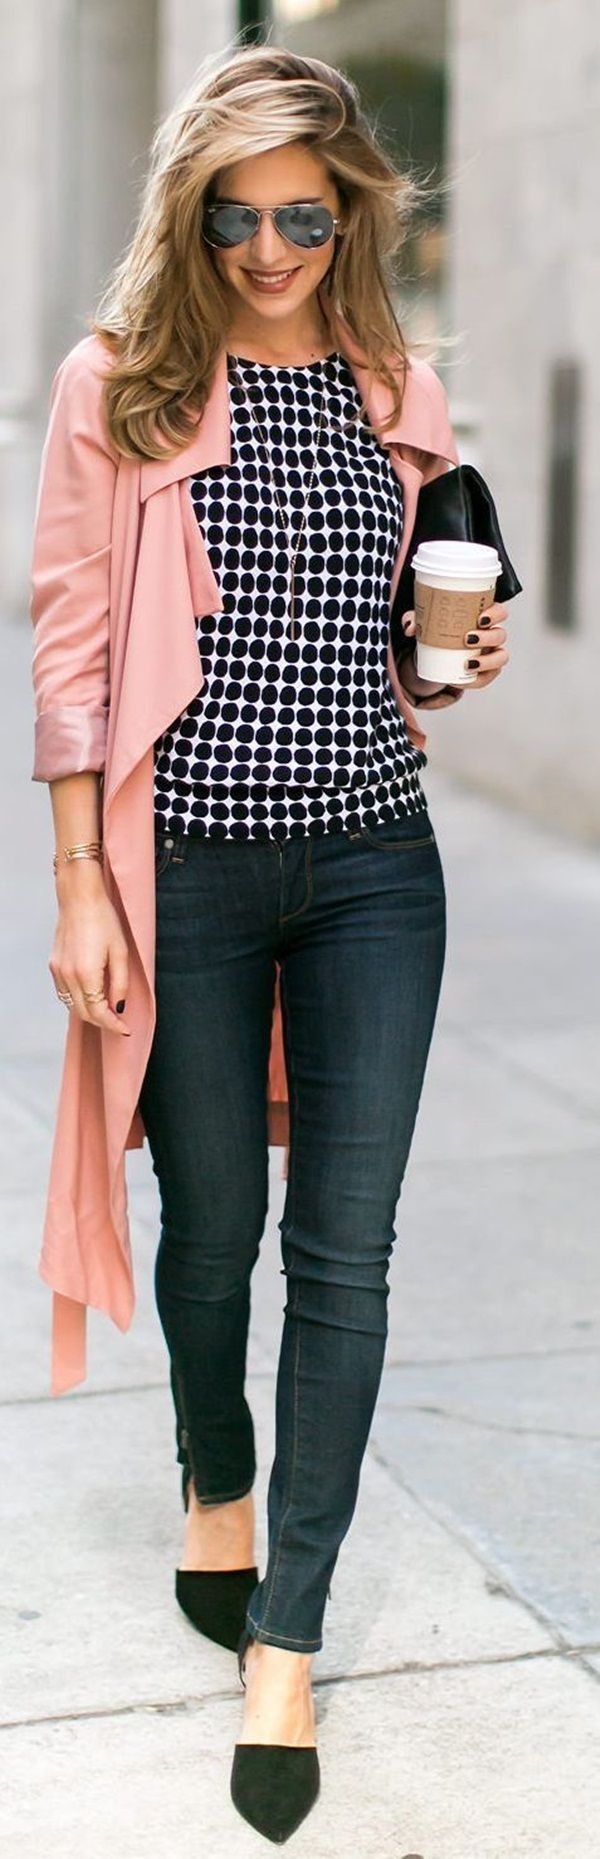 45 cozy winter work outfits for women in 2016 | casual jeans